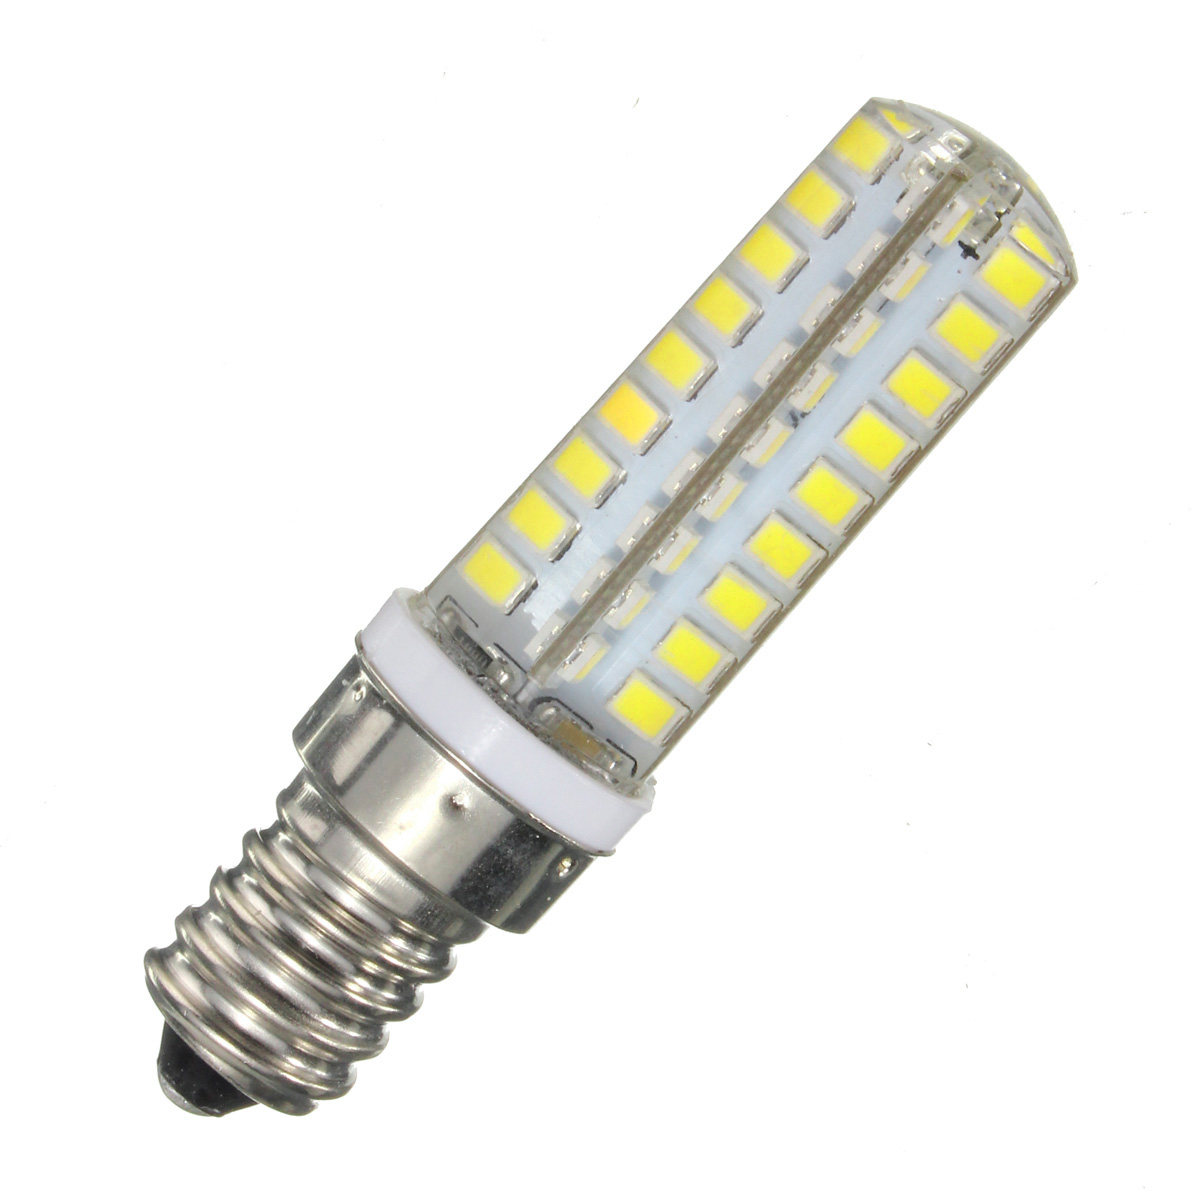 Dimmable 9W G9 B15 E14 E12 72 450LM SMD 2835 LED Corn Lamp Bulb AC 220V